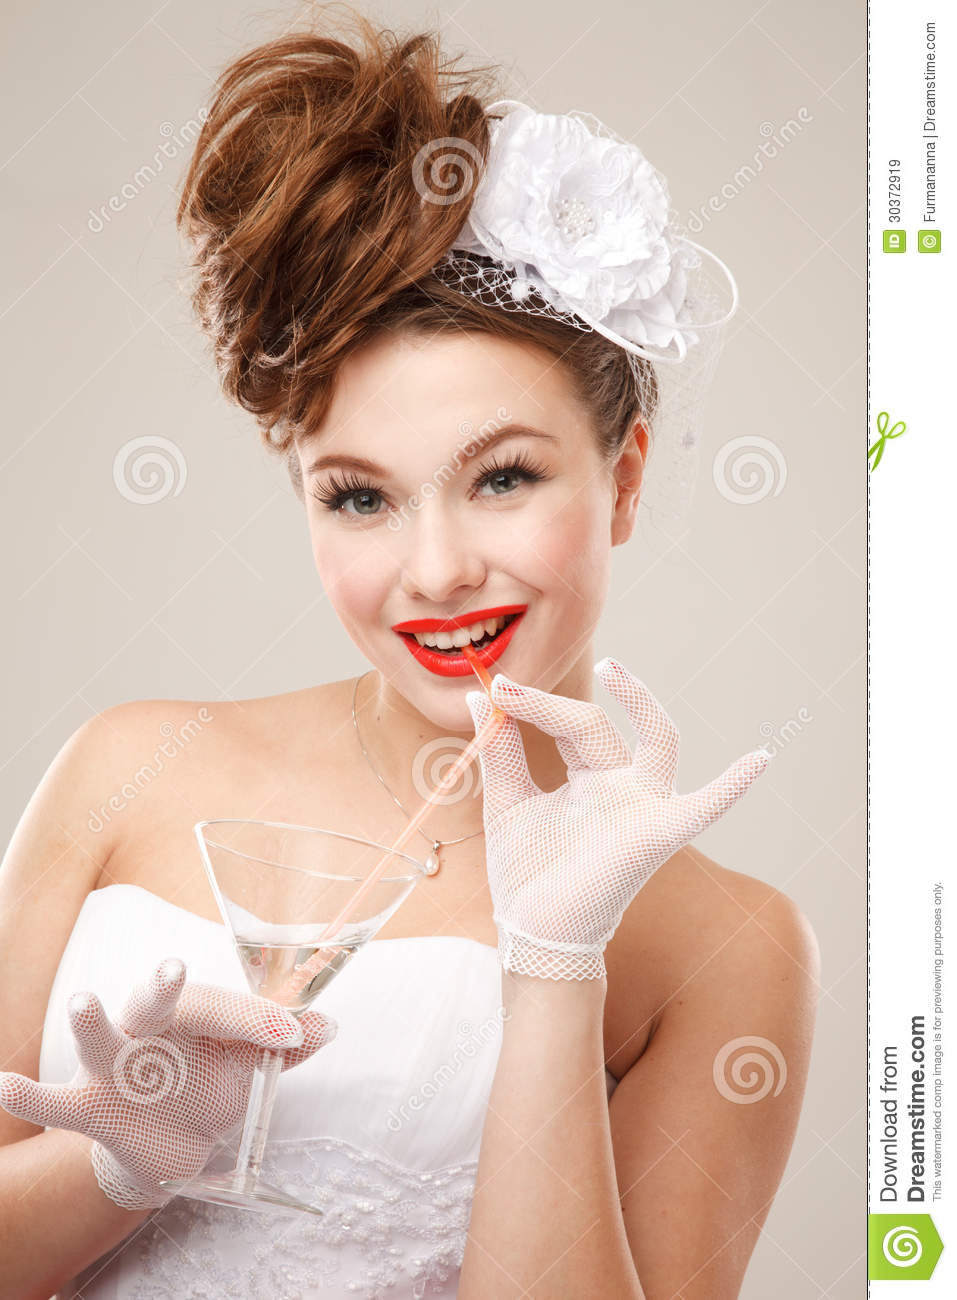 Pin Up Bride Stock Image Image Of Bride Happiness Fashion 30372919